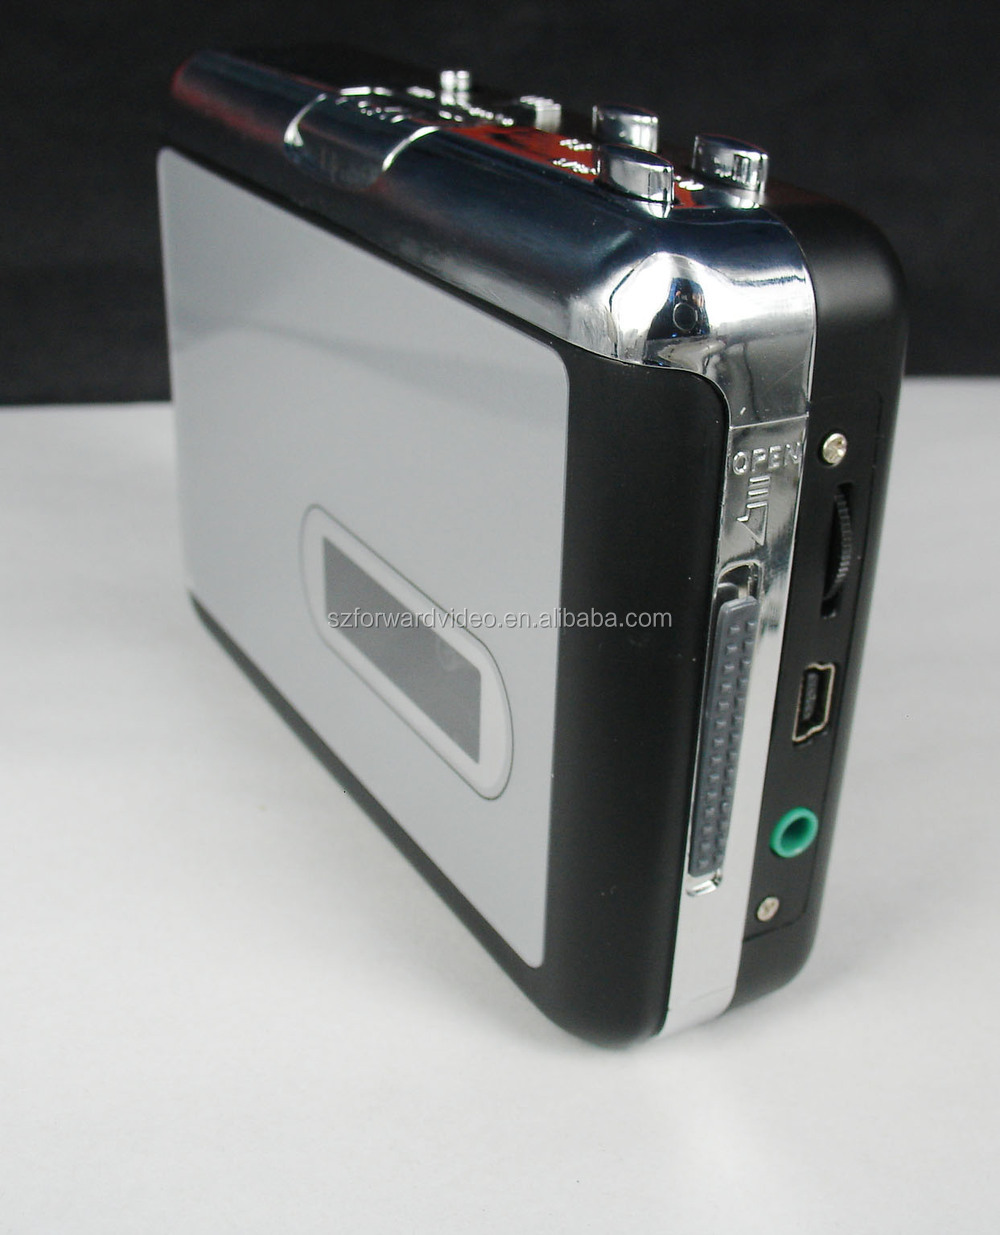 Forward Video ezcap stereo USB Cassette player